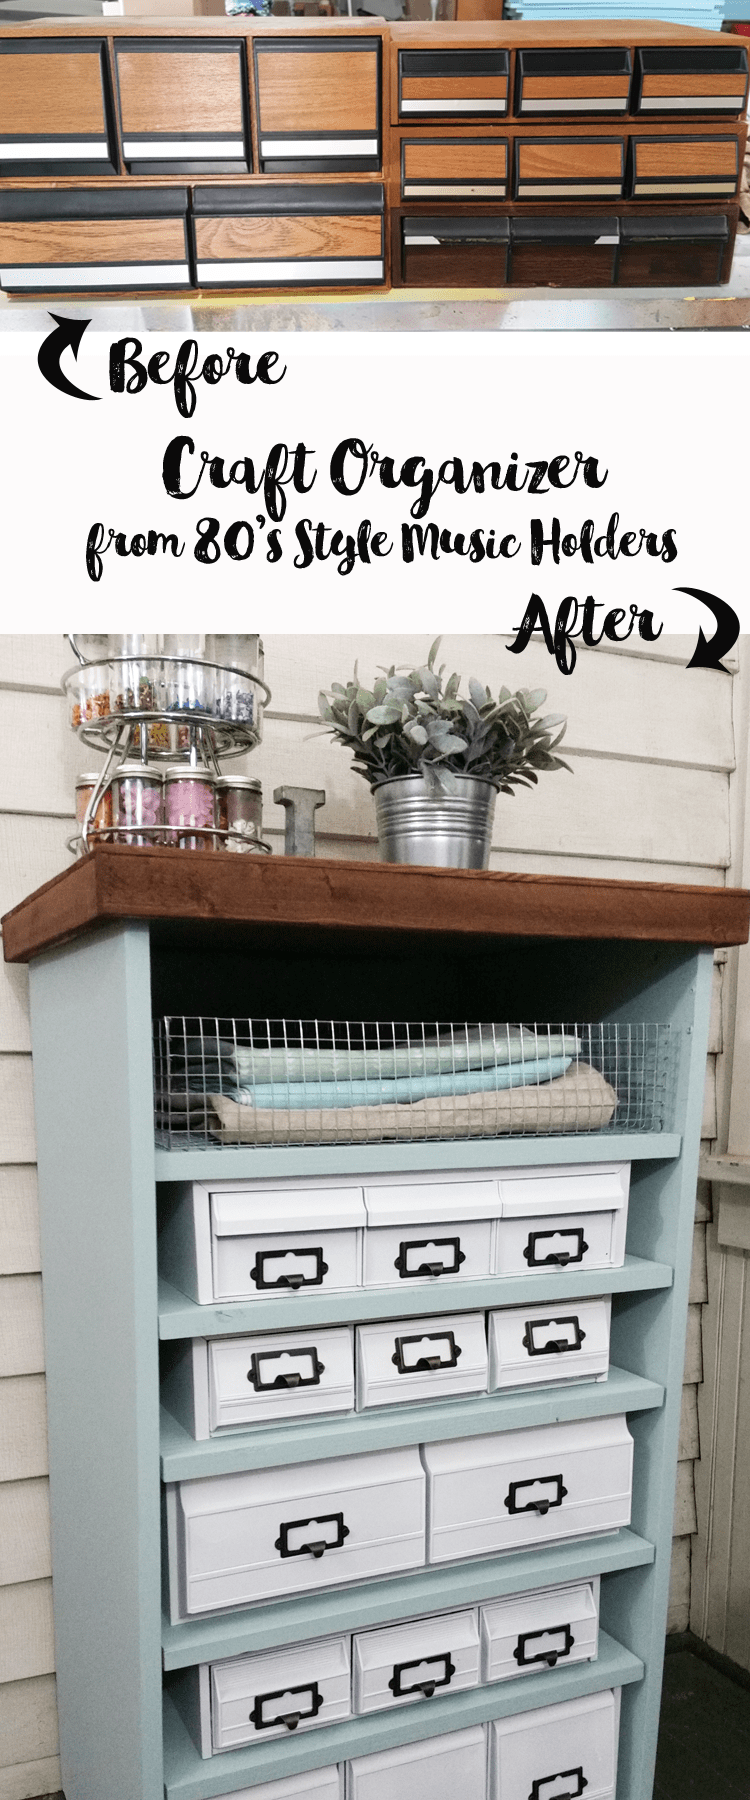 I found a bunch of the old 80's cassette, cd and vhs holders.  I gave them a cohesive look  with white paint and stacked them in an old stereo cabinet to create this awesome craft organizer!